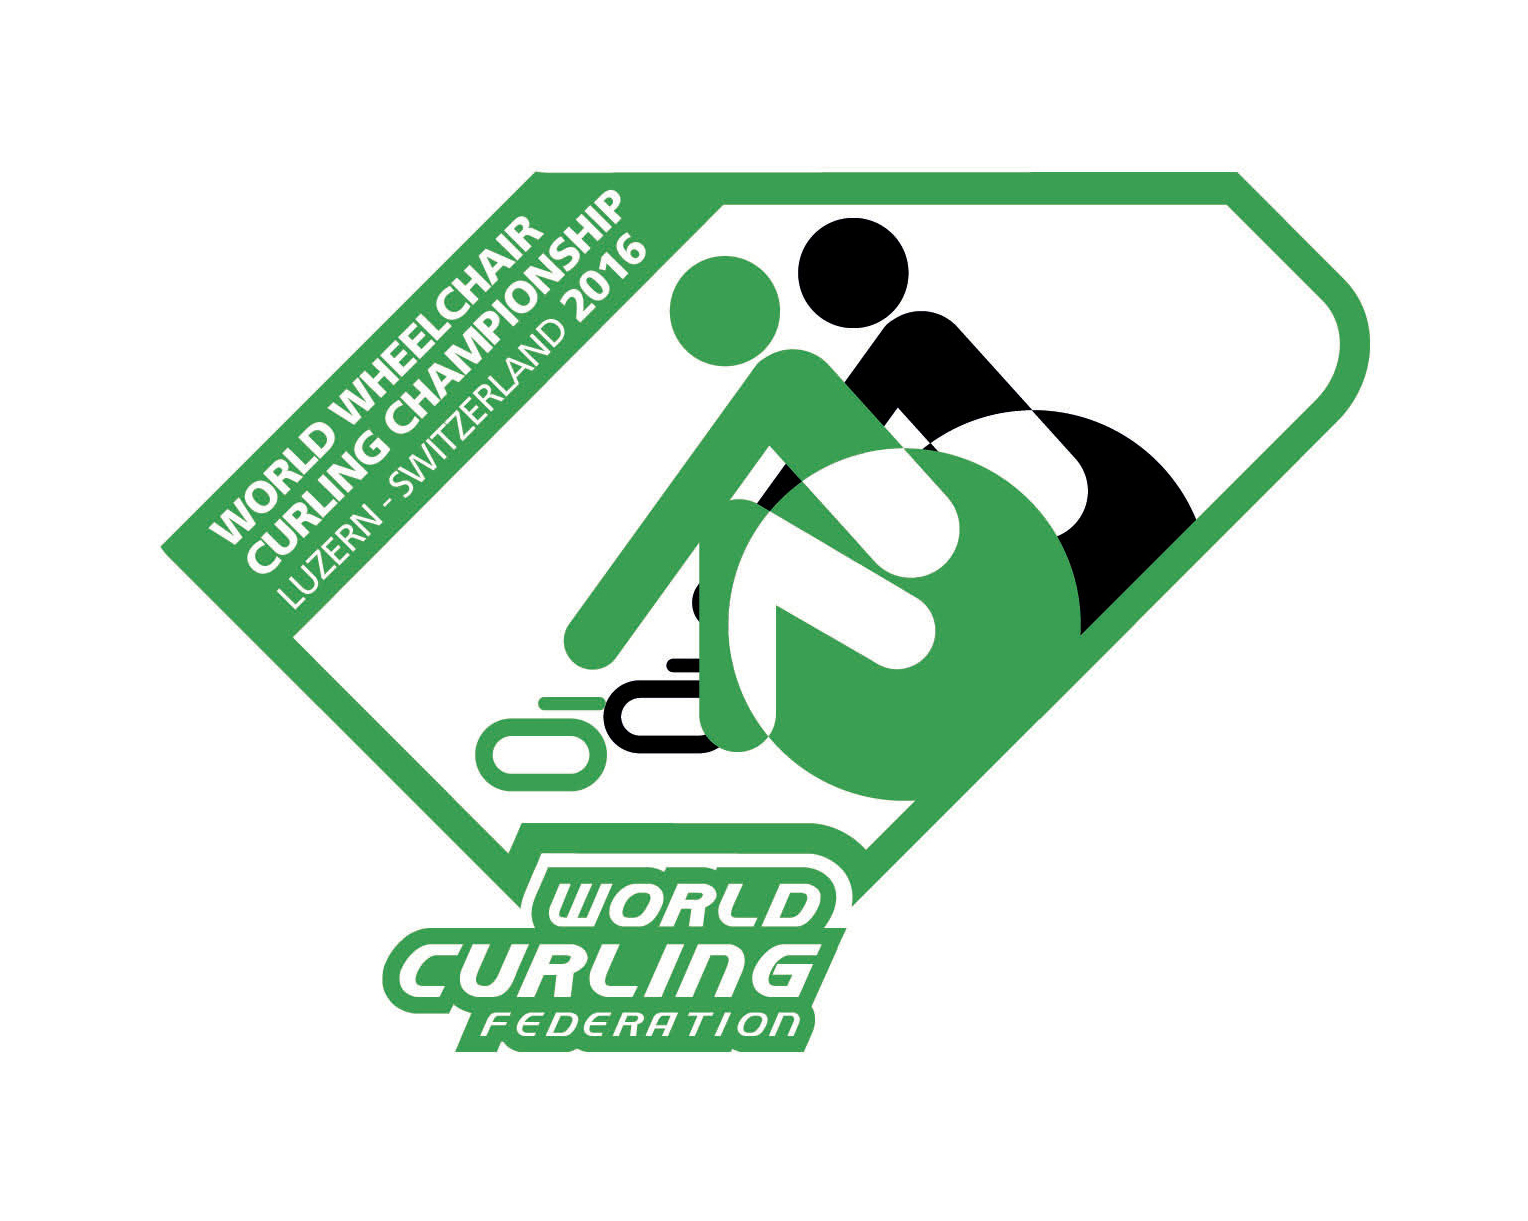 http://www.curlingcalendar.com/files/tournament-pictures/wwhcc2016%20logo%20fb.png